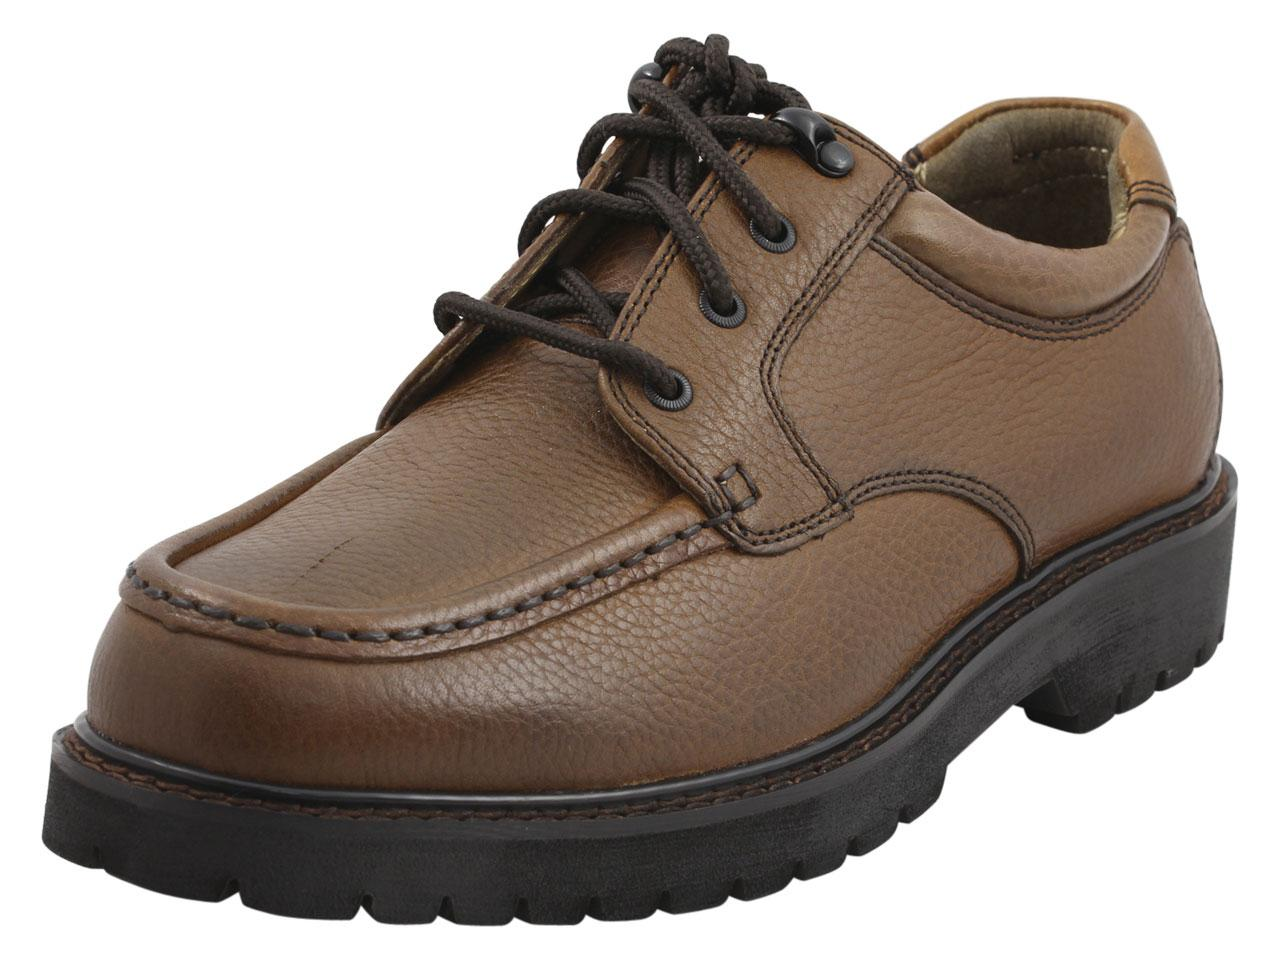 Image of Dockers Men's Glacier Memory Foam Oxfords Shoes - Brown - 10 E(W) US